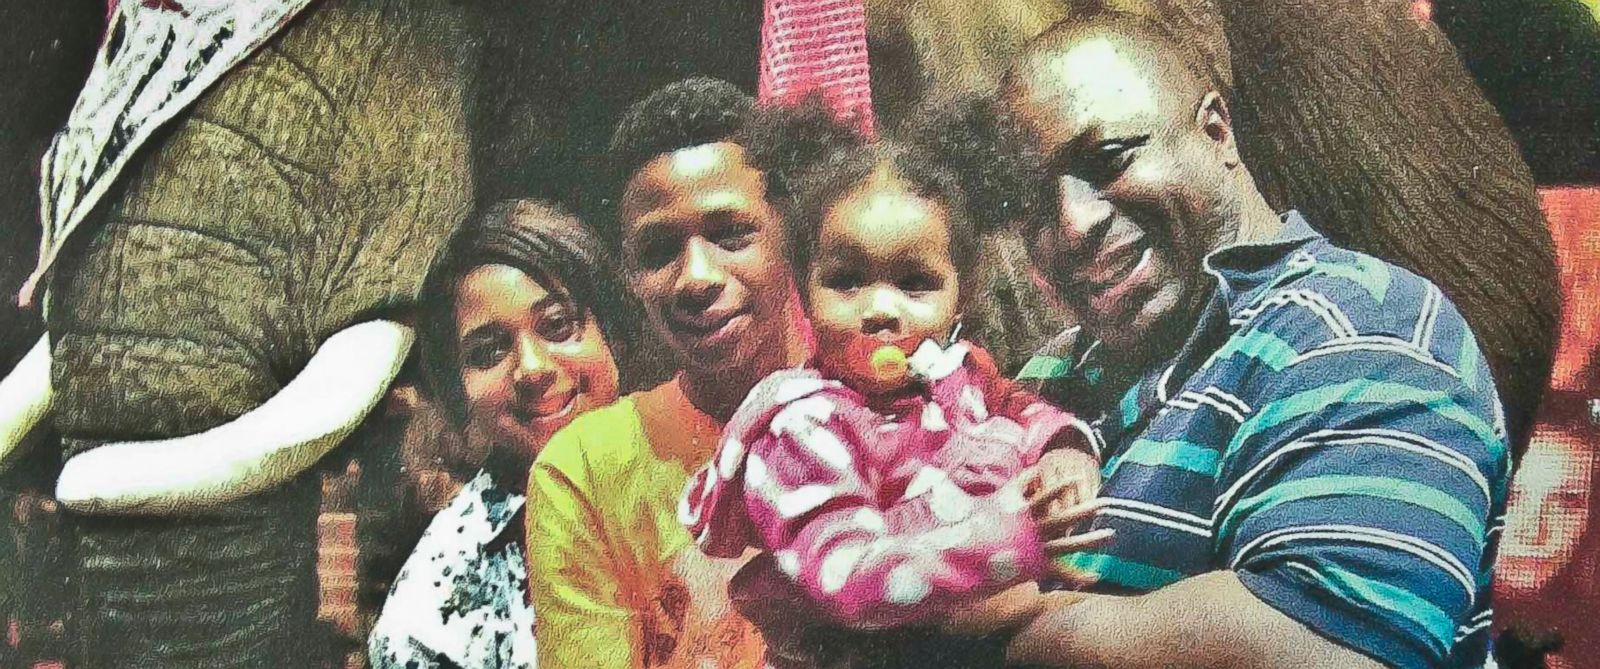 PHOTO: Eric Garner, right, poses with his children during during a family outing in this undated family photo provided by the National Action Network, Saturday, July 19, 2014.